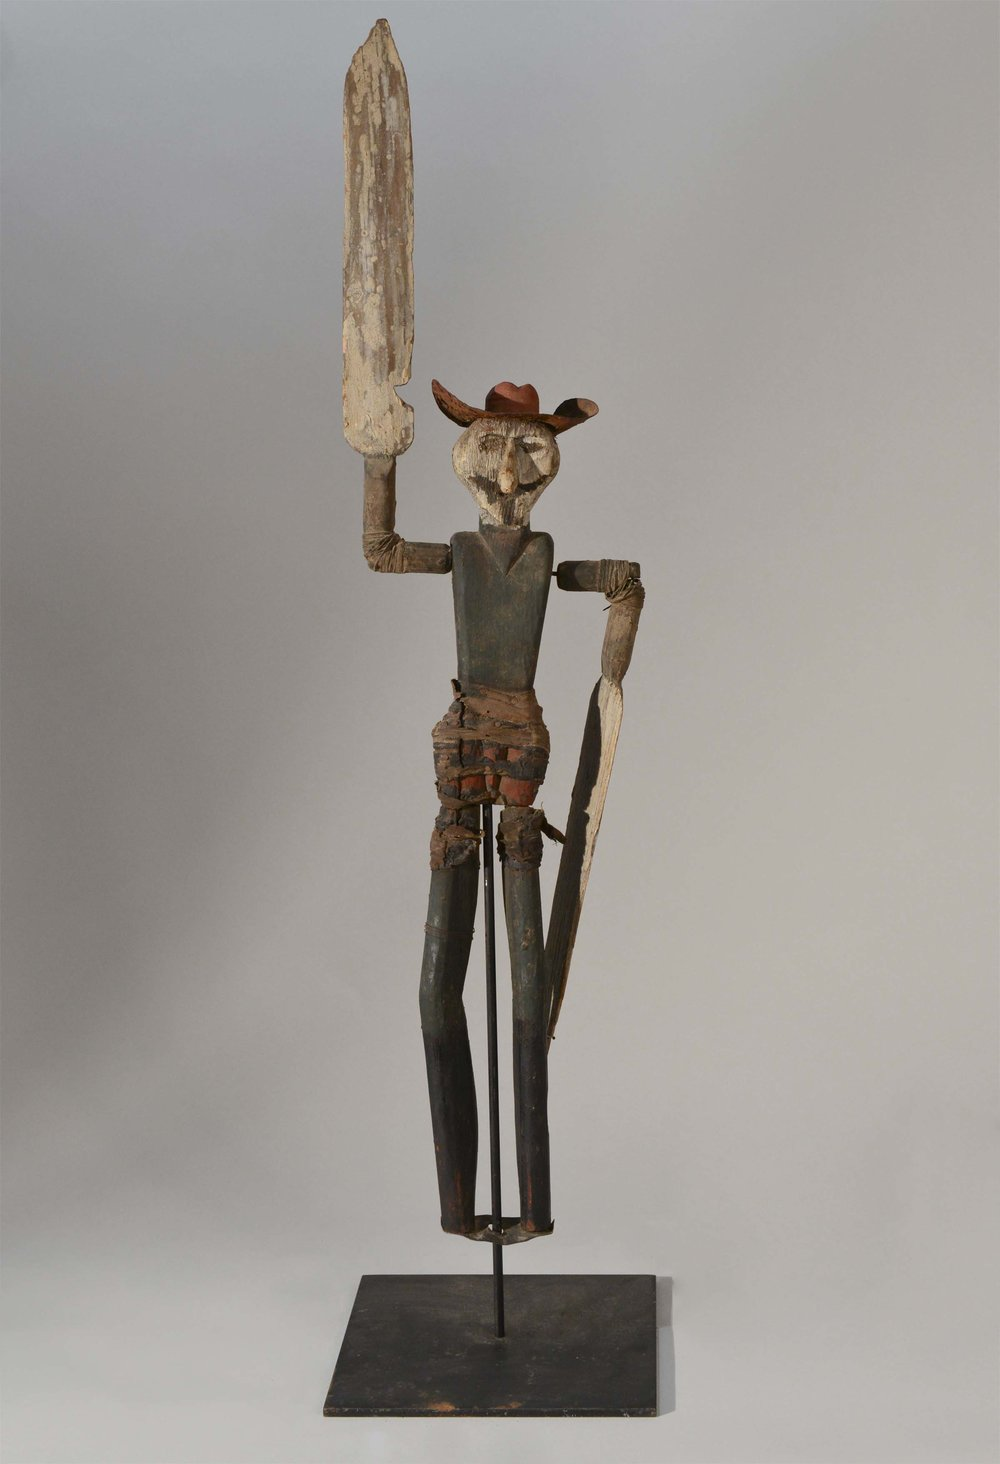 Anonymous, Cape Cod,  Whirligig Figure (man),  c. 1925, carved wood, paint with various mixed media old repairs, 22h x 4w x 4d in.